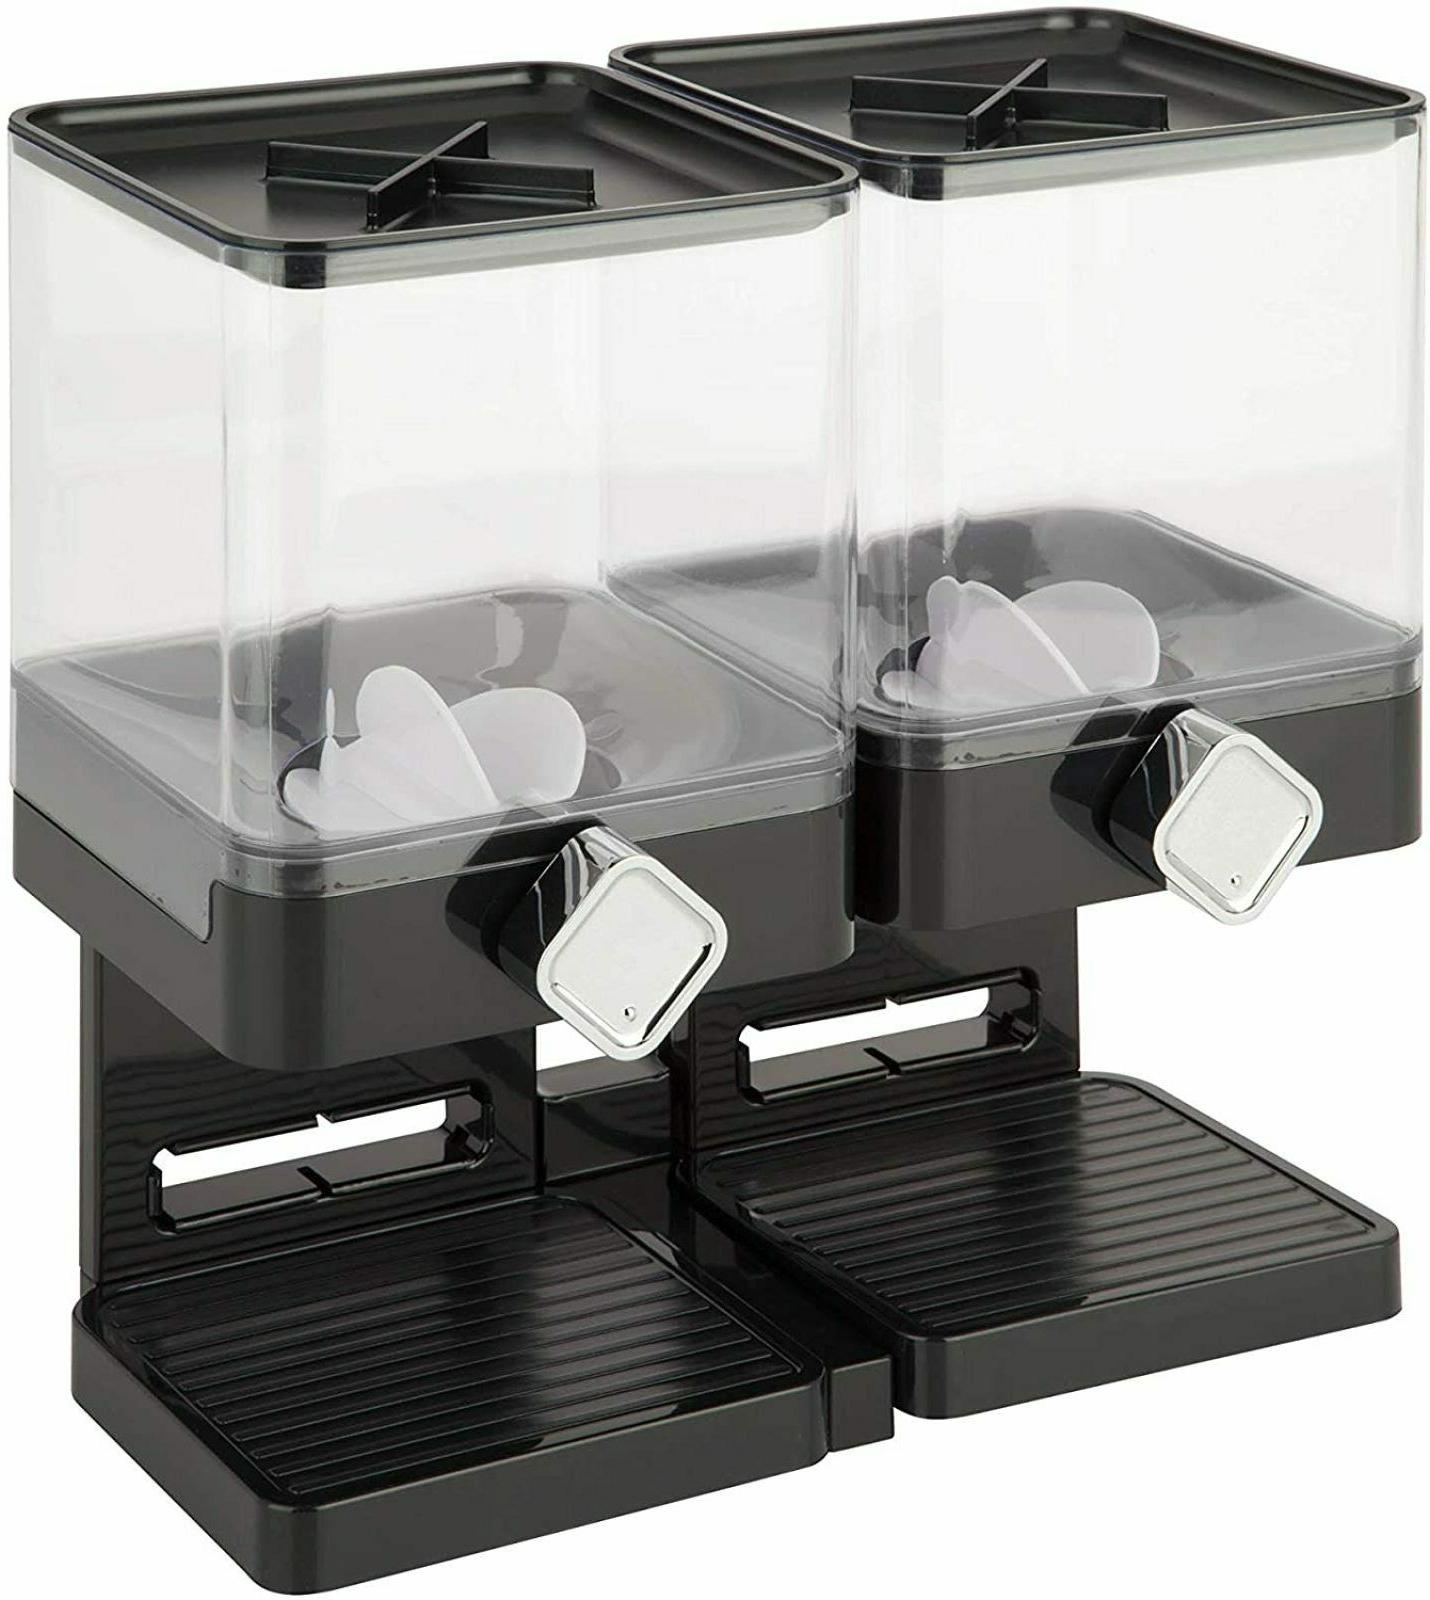 Large Dispenser Double Food Container Kitchen